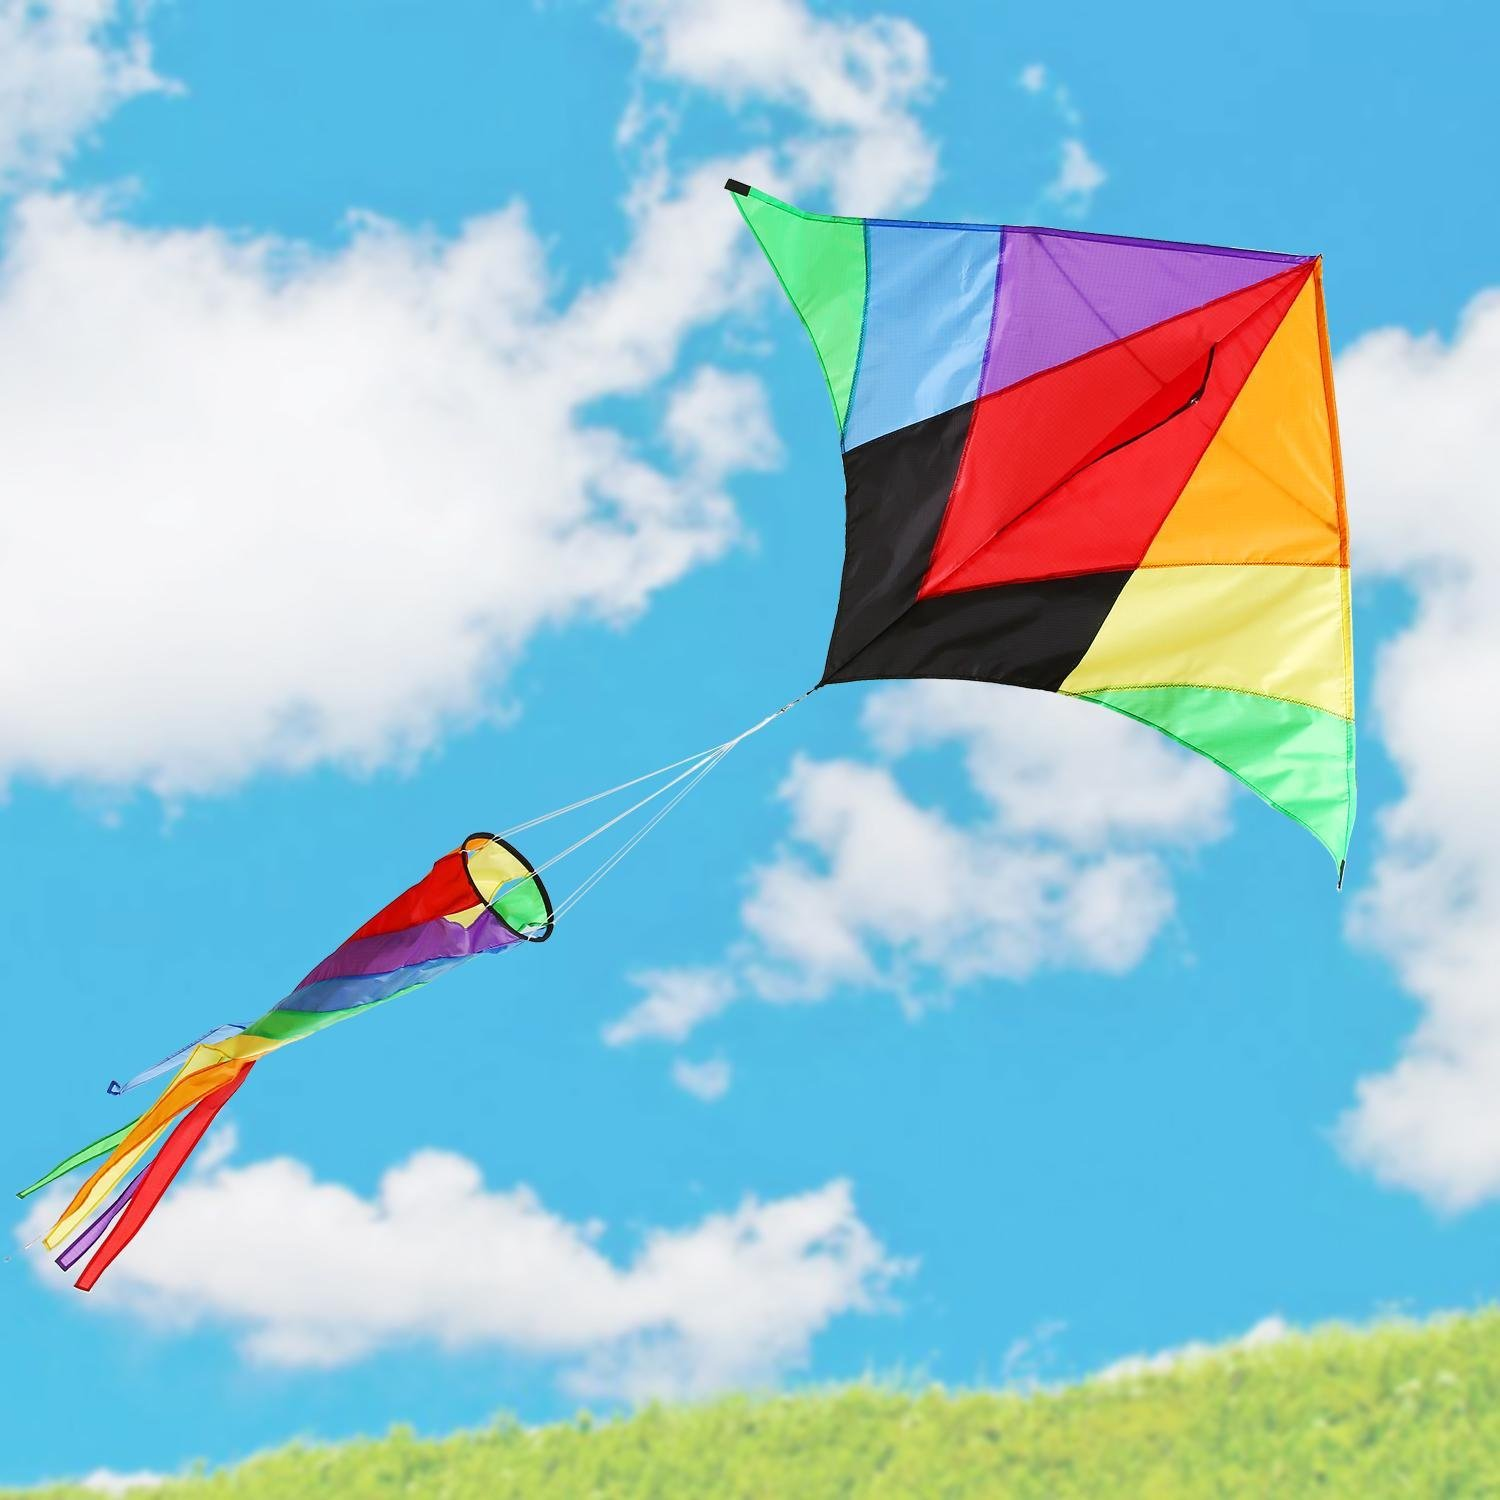 Dtemple Colorful Kite, Rainbow Kite/ Rainbow Delta Kite - Easy to Assemble, Launch, Fly - with Spinning Tail for Kids 3+ (US STOCK)